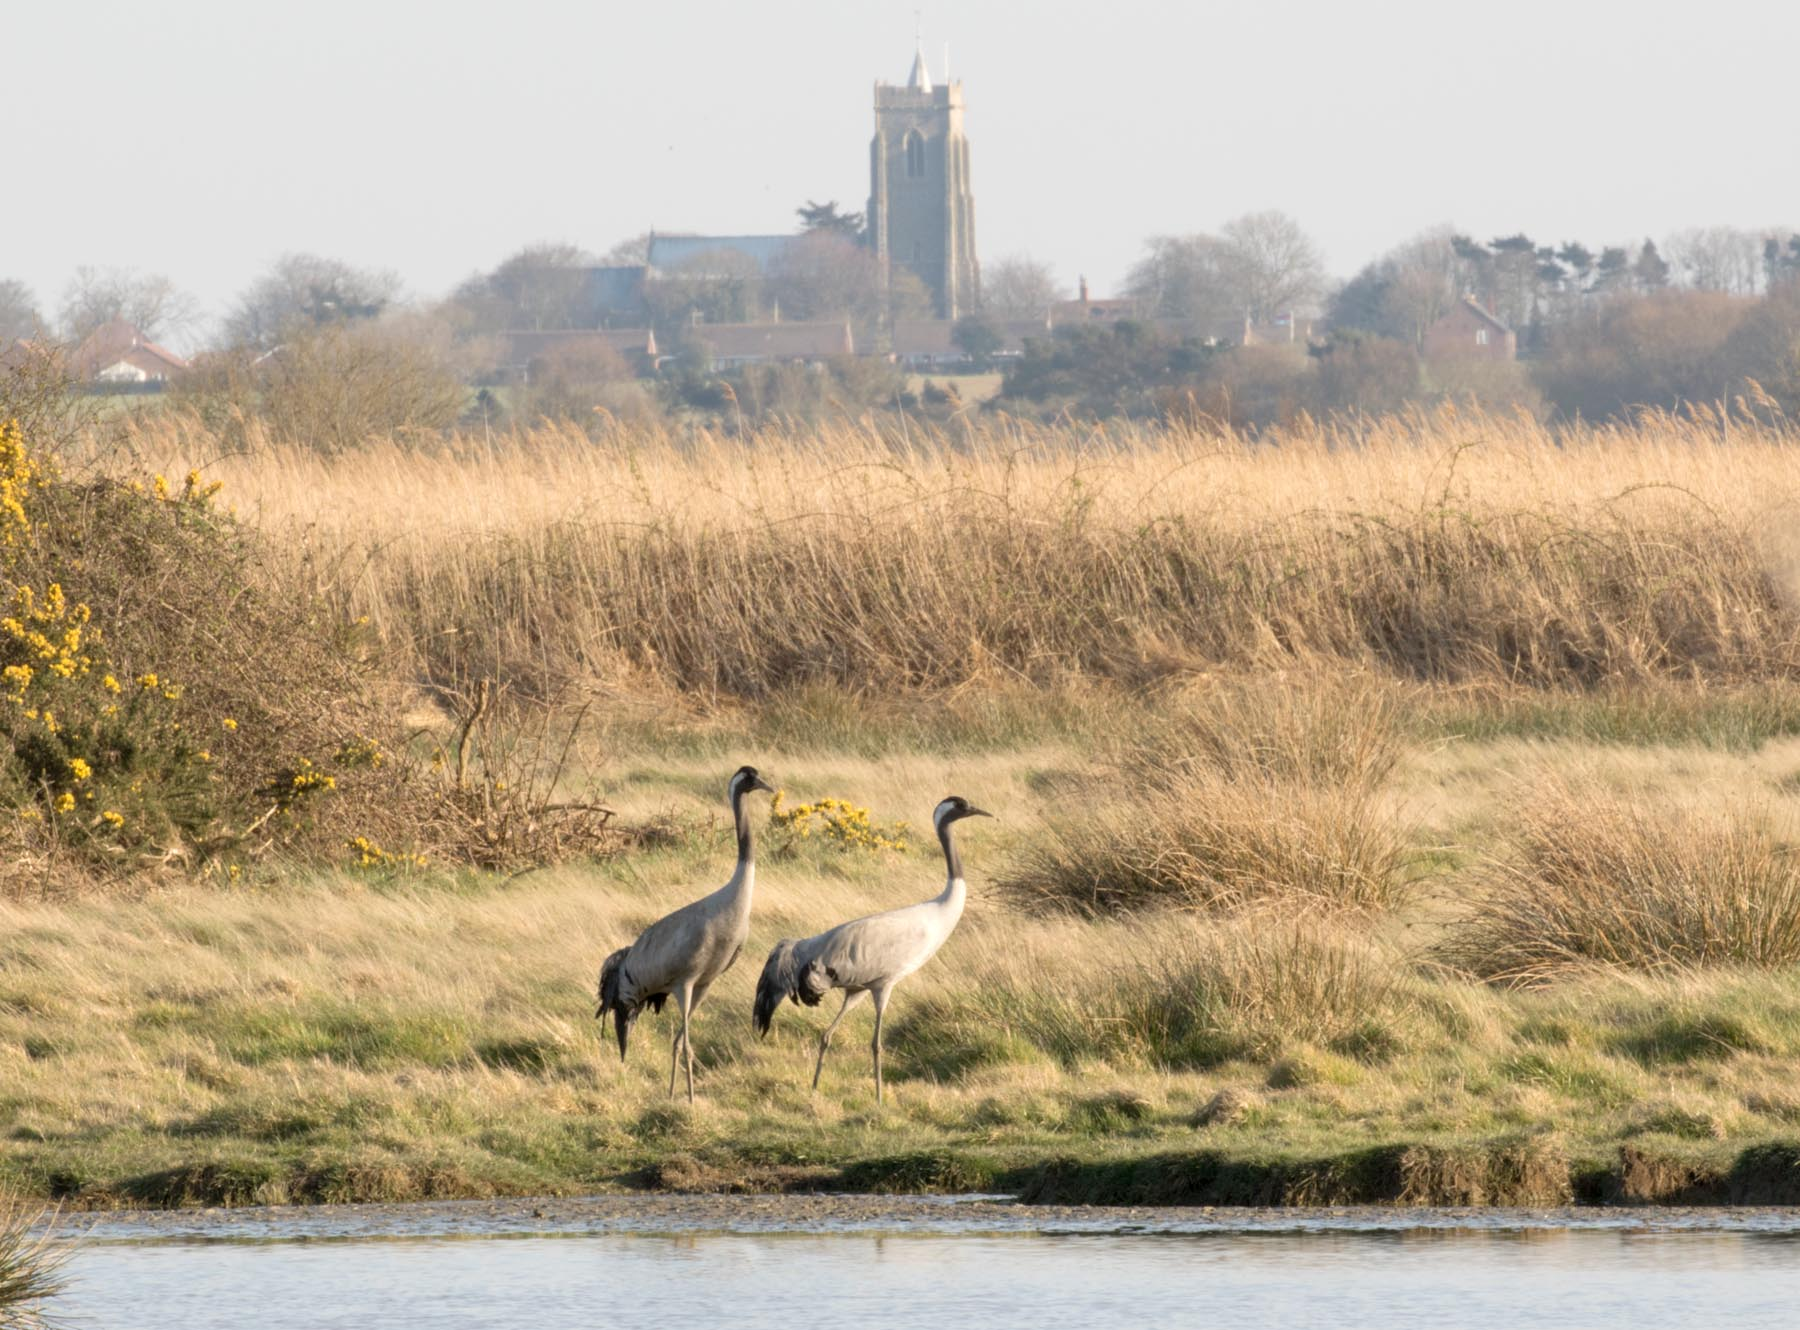 Cranes at Hickling